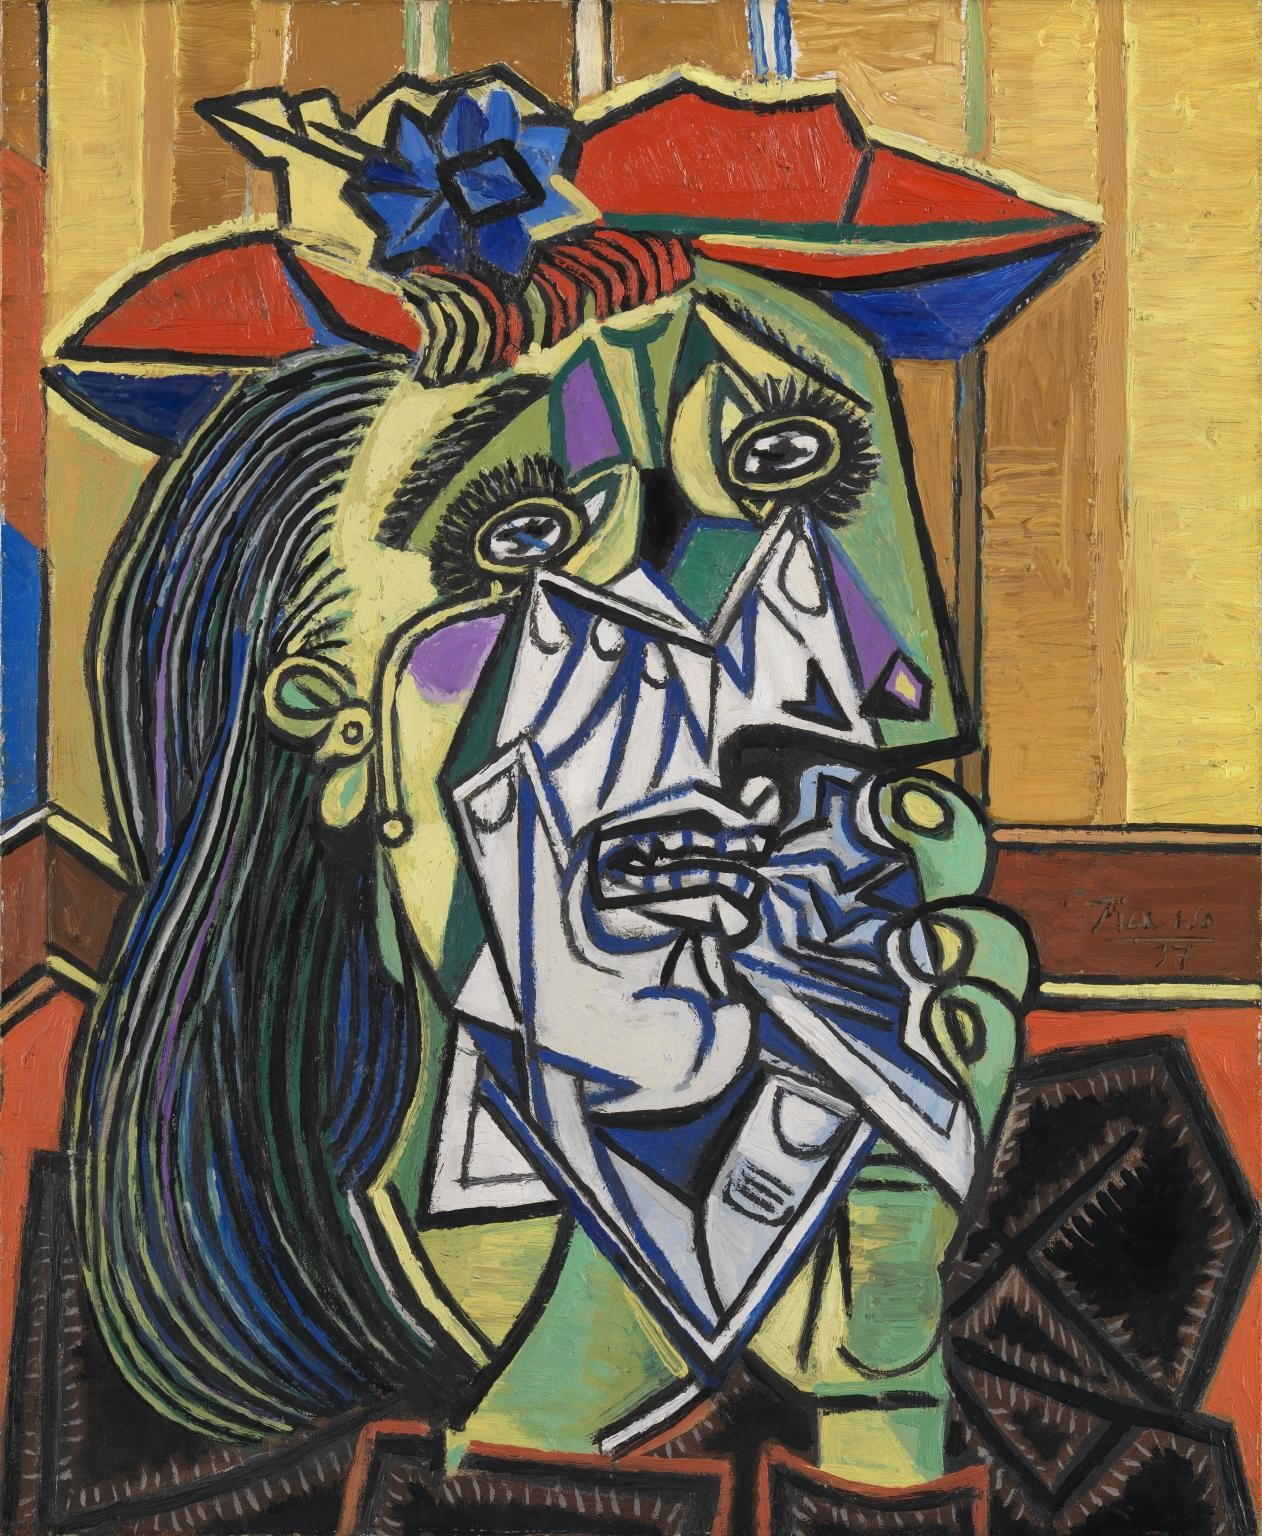 Pablo Picasso,  The Weeping Woman , 1937, 60 x 49 cm, oil on Canvas, Tate Modern.   http://www.tate.org.uk/art/artworks/picasso-weeping-woman-t05010